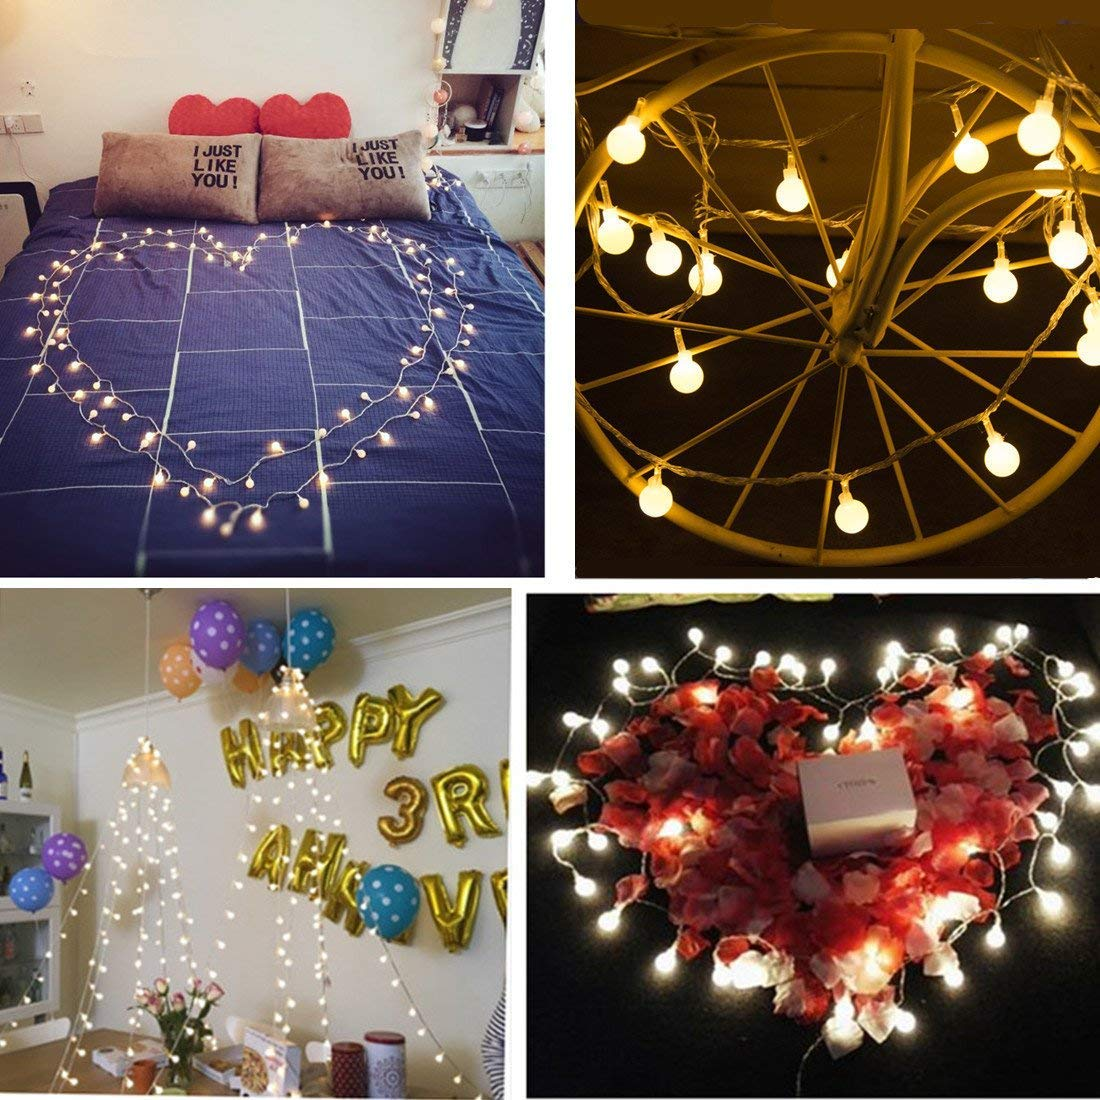 100 LED Globe String Lights, 33ft 8 Modes USB Globe Fairy Lights Remote Control & Timer, Starry Lights Home Party Birthday Garden Festival Wedding Xmas Indoor Outdoor Use - Warm White